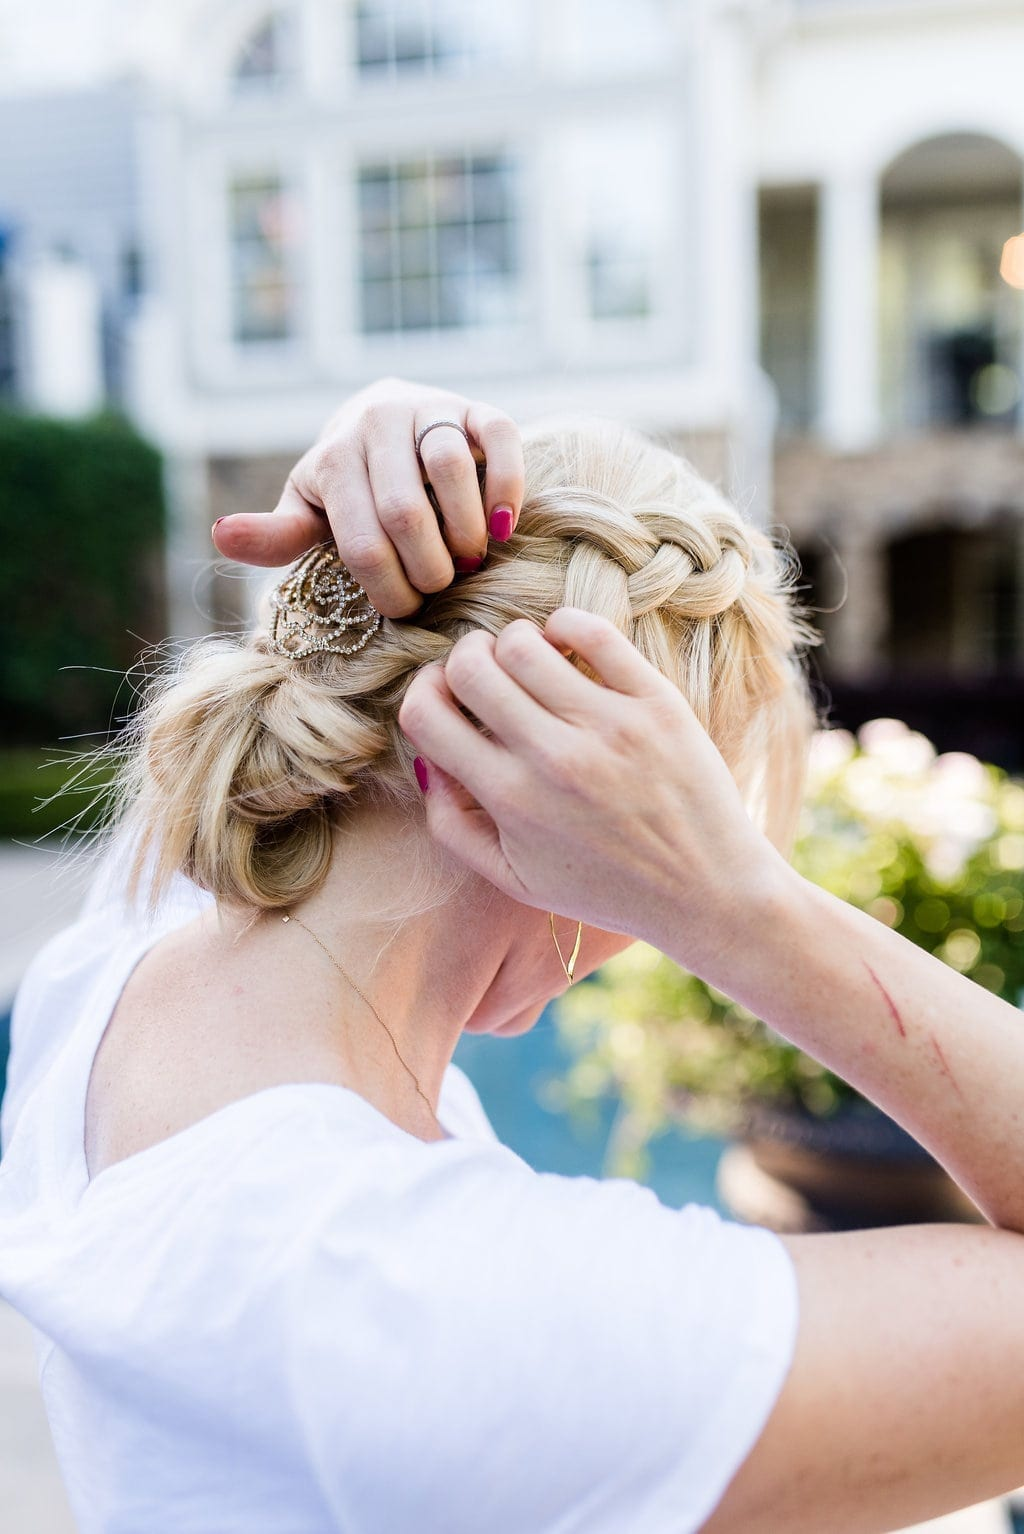 Dutch braid. How to do a dutch braid hairstyle.